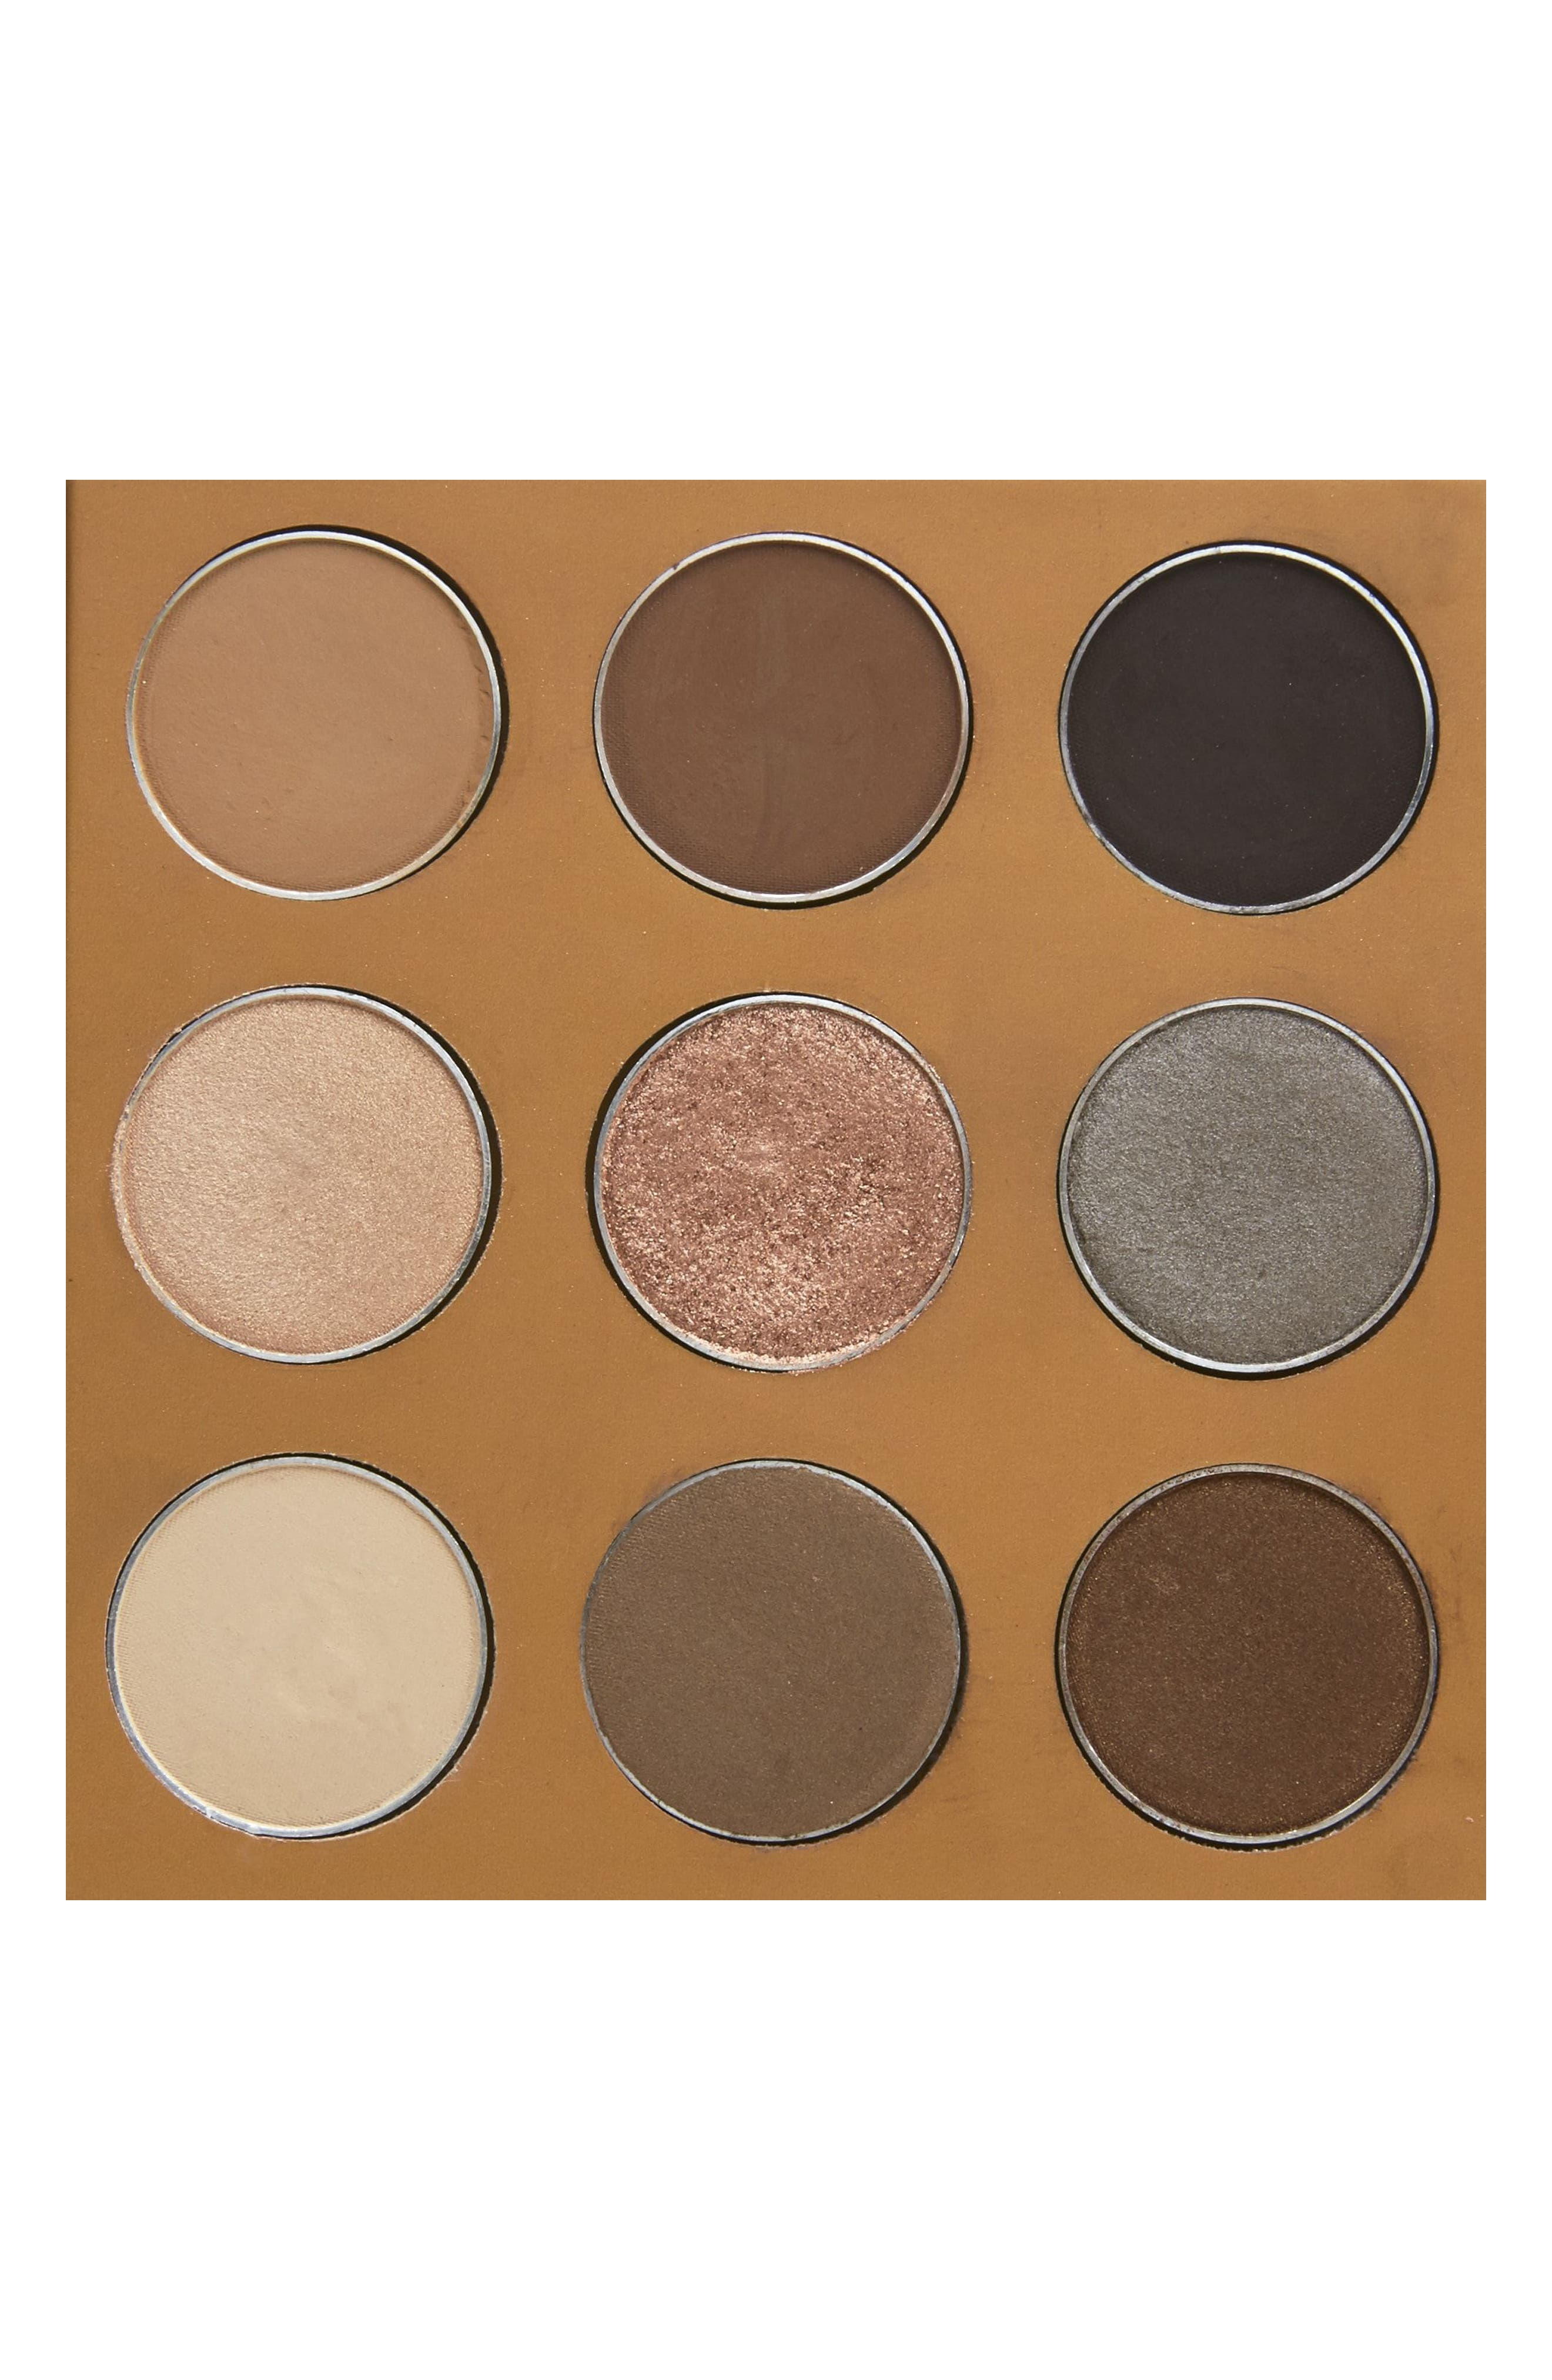 Coffee Eyeshadow Palette,                             Alternate thumbnail 3, color,                             NO COLOR